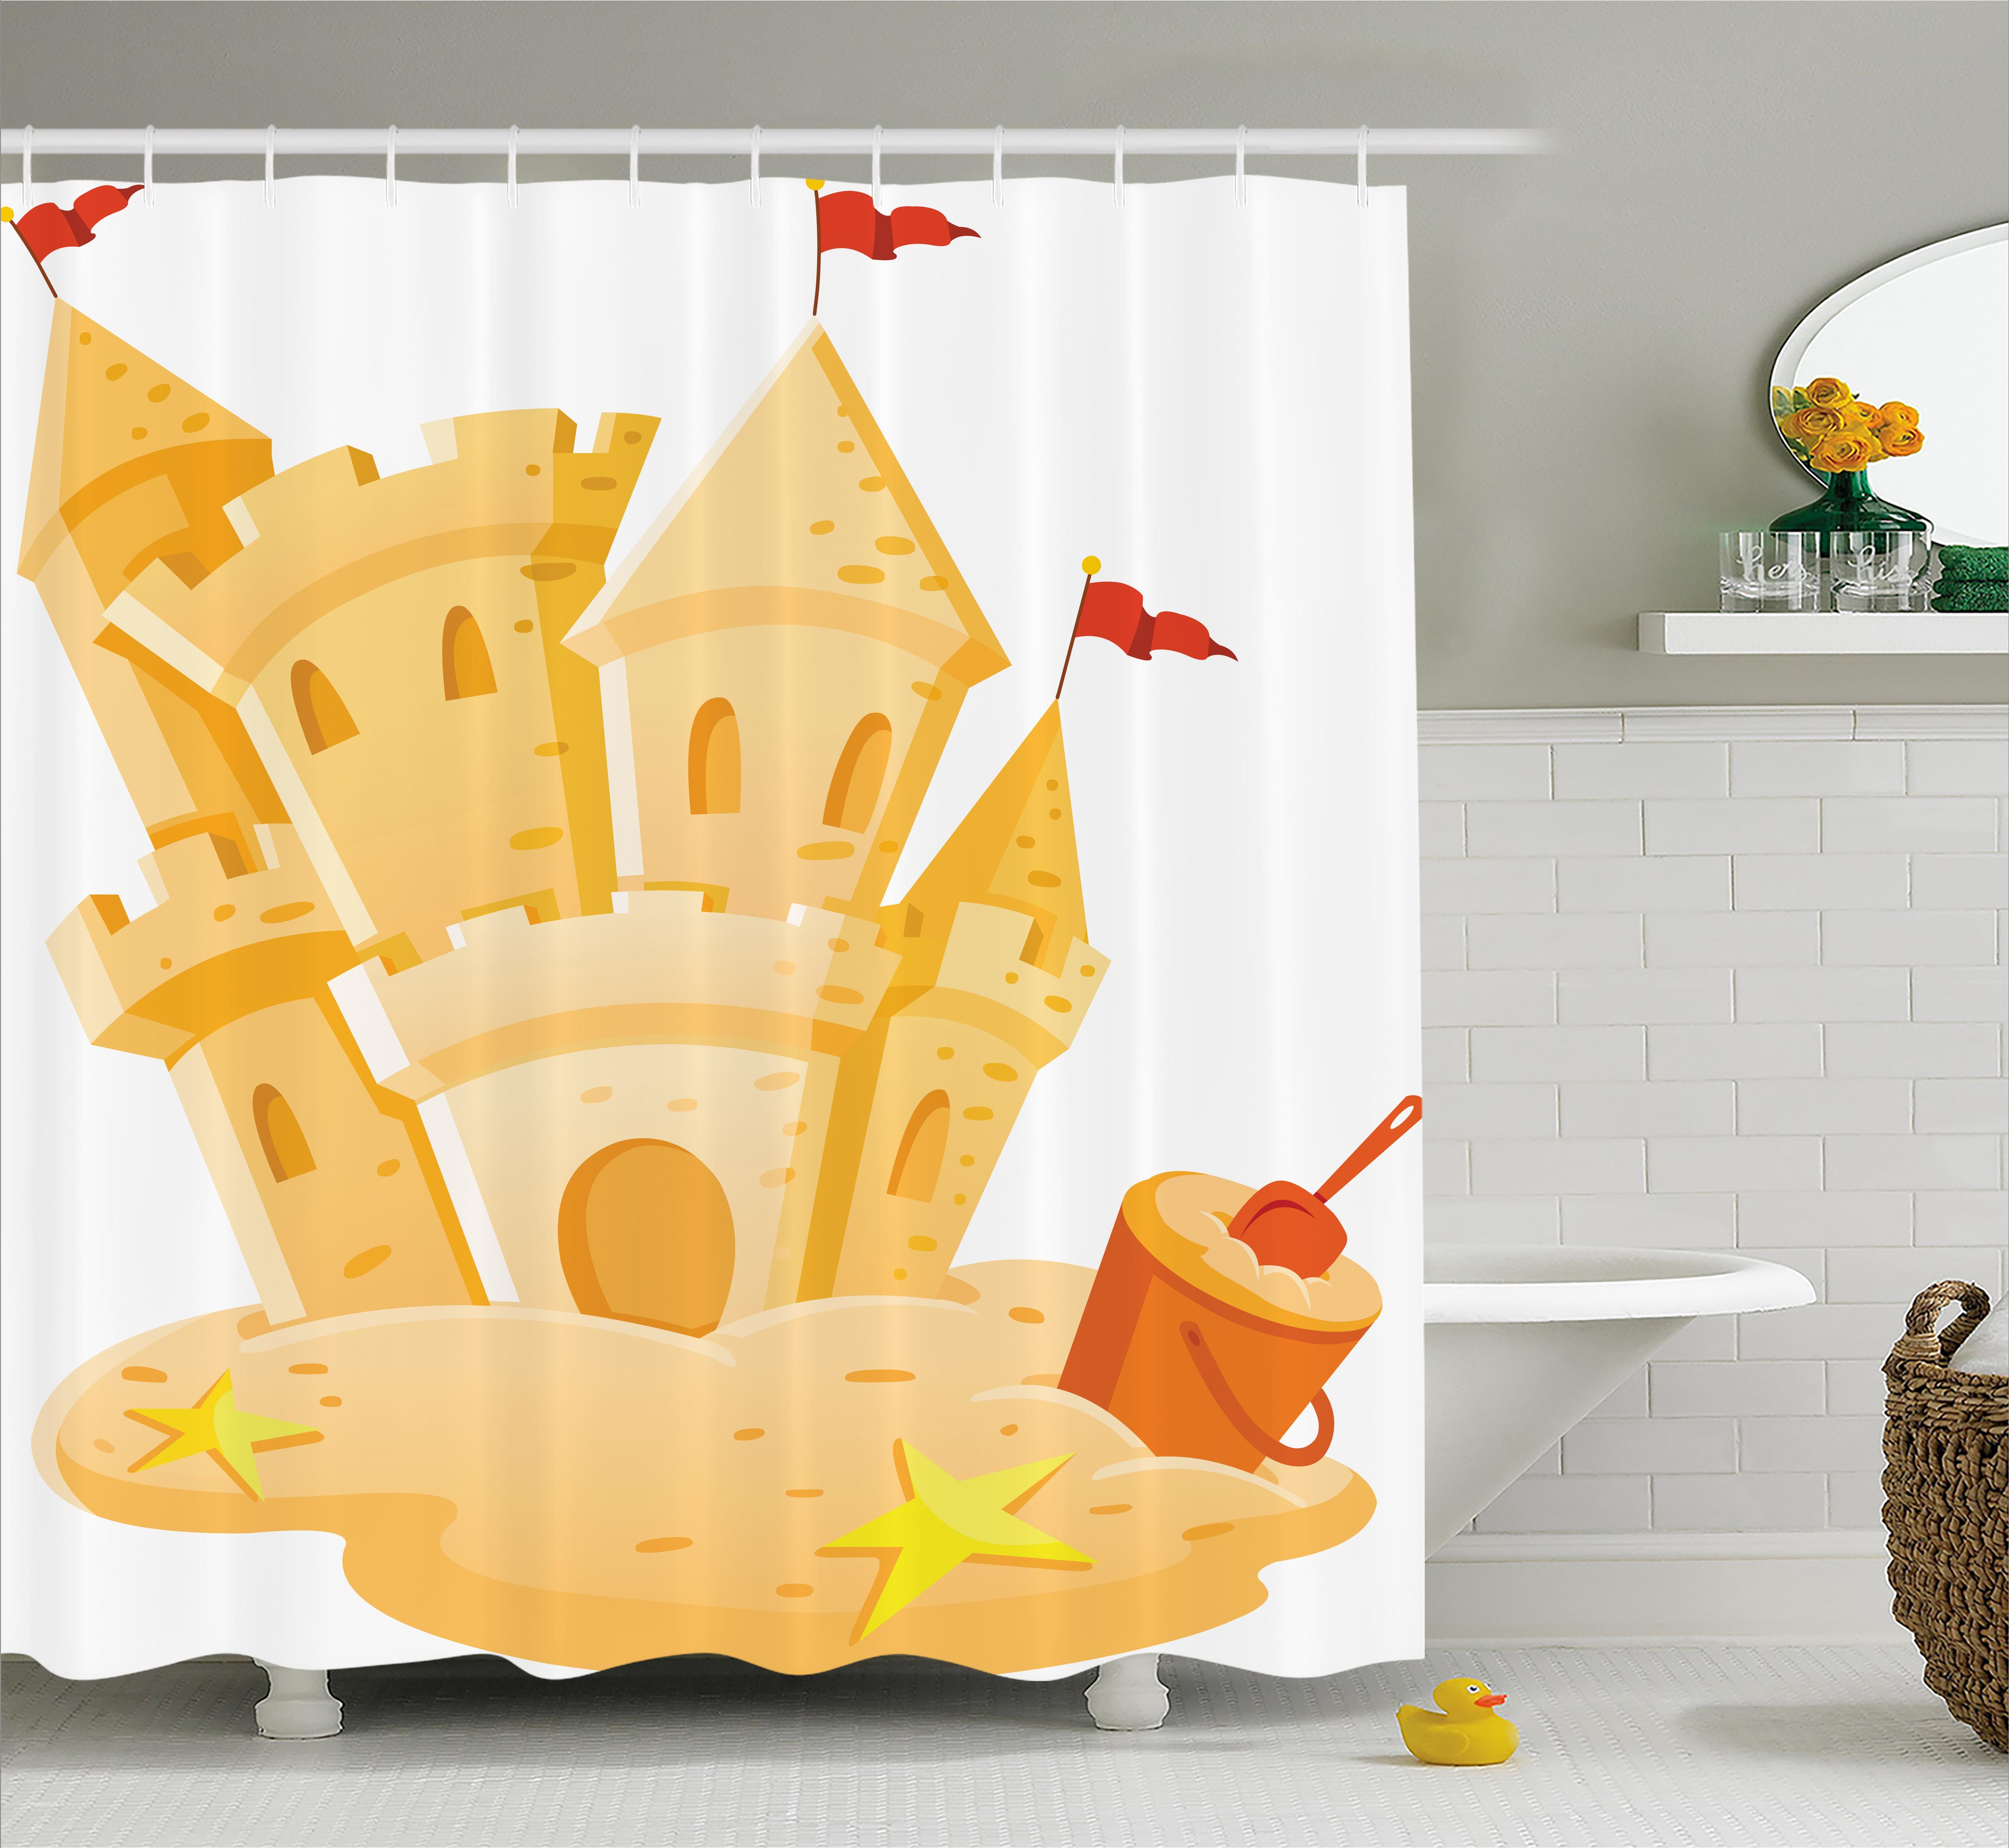 Kids Decor Shower Curtain, Sand Castle Kingdom Summer Hobby Activity on the Beach Children Game Design , Fabric Bathroom Set with Hooks, 69W X 84L Inches Extra Long, Light Yellow, by Ambesonne